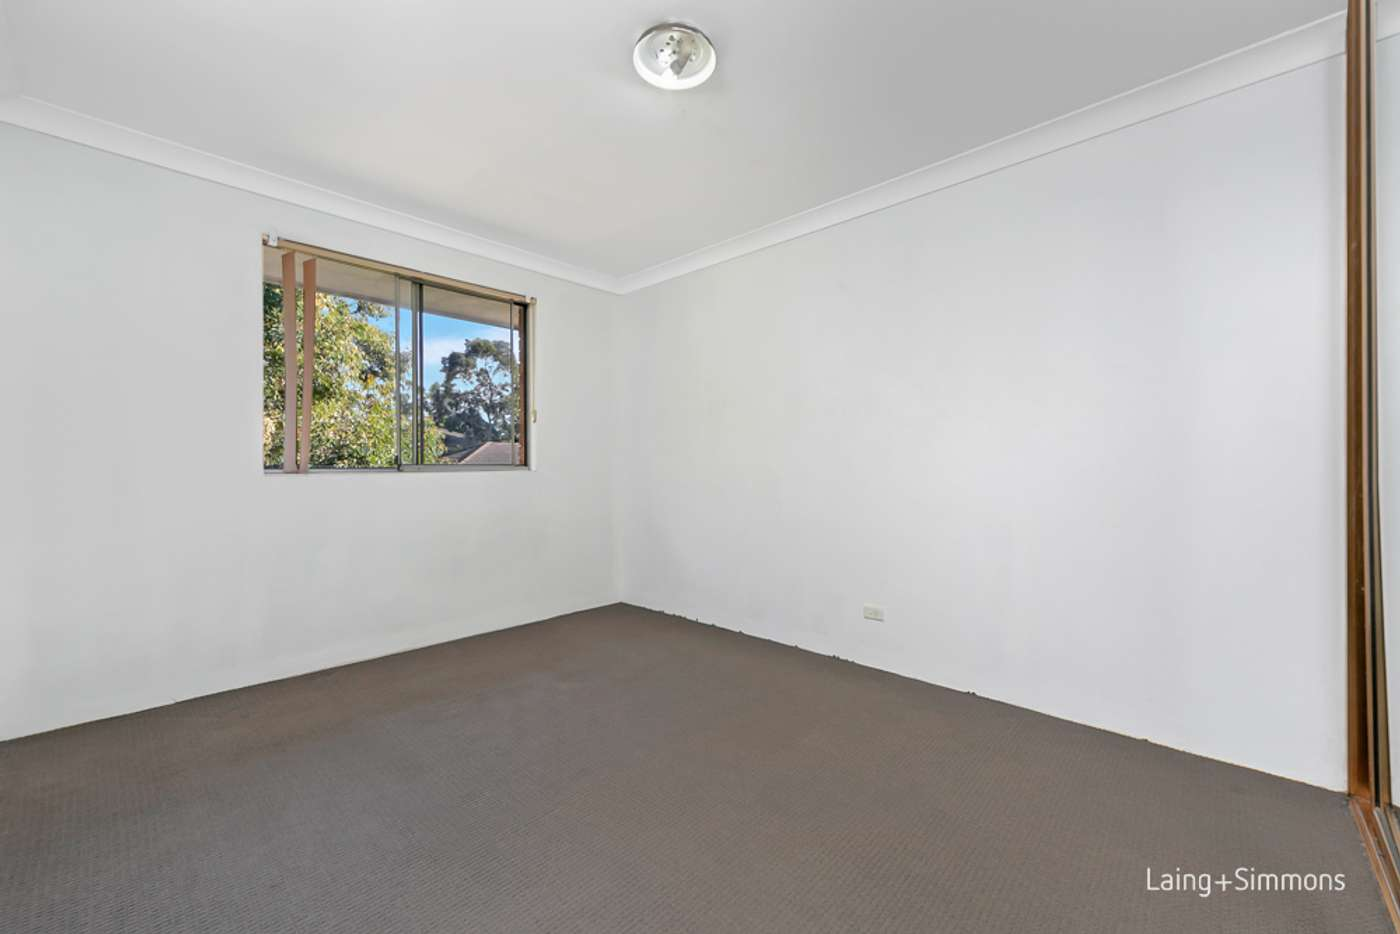 Sixth view of Homely unit listing, 9/44 Luxford Road, Mount Druitt NSW 2770